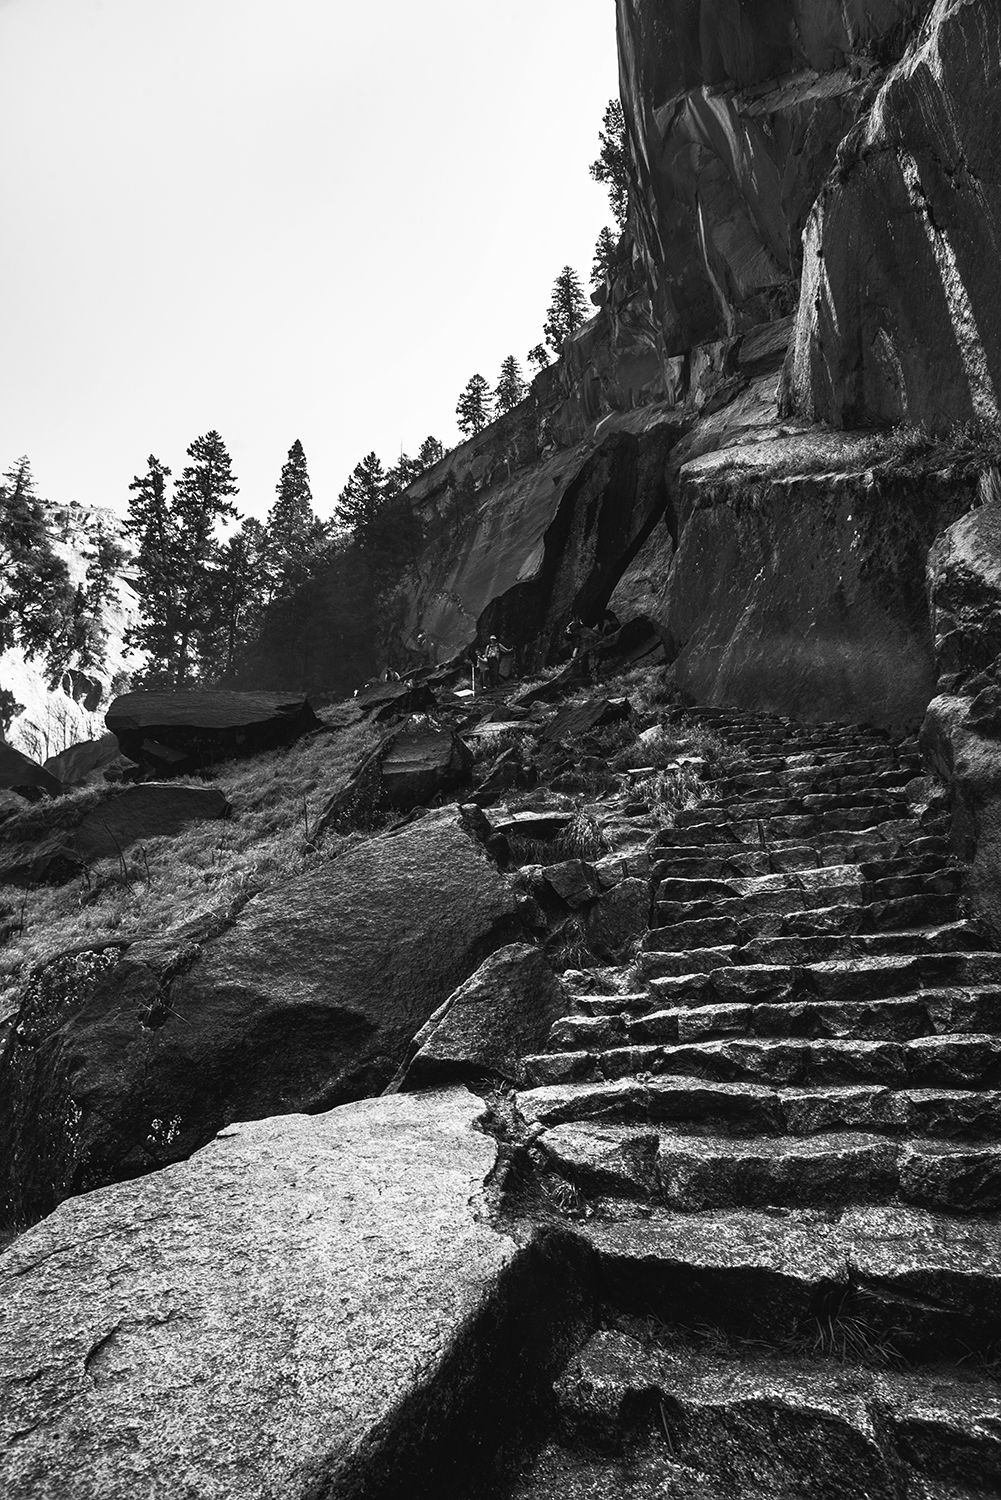 The steps up to Vernal Fall were steep and slippery! It reminded me of photos I've seen of Machu Picchu.